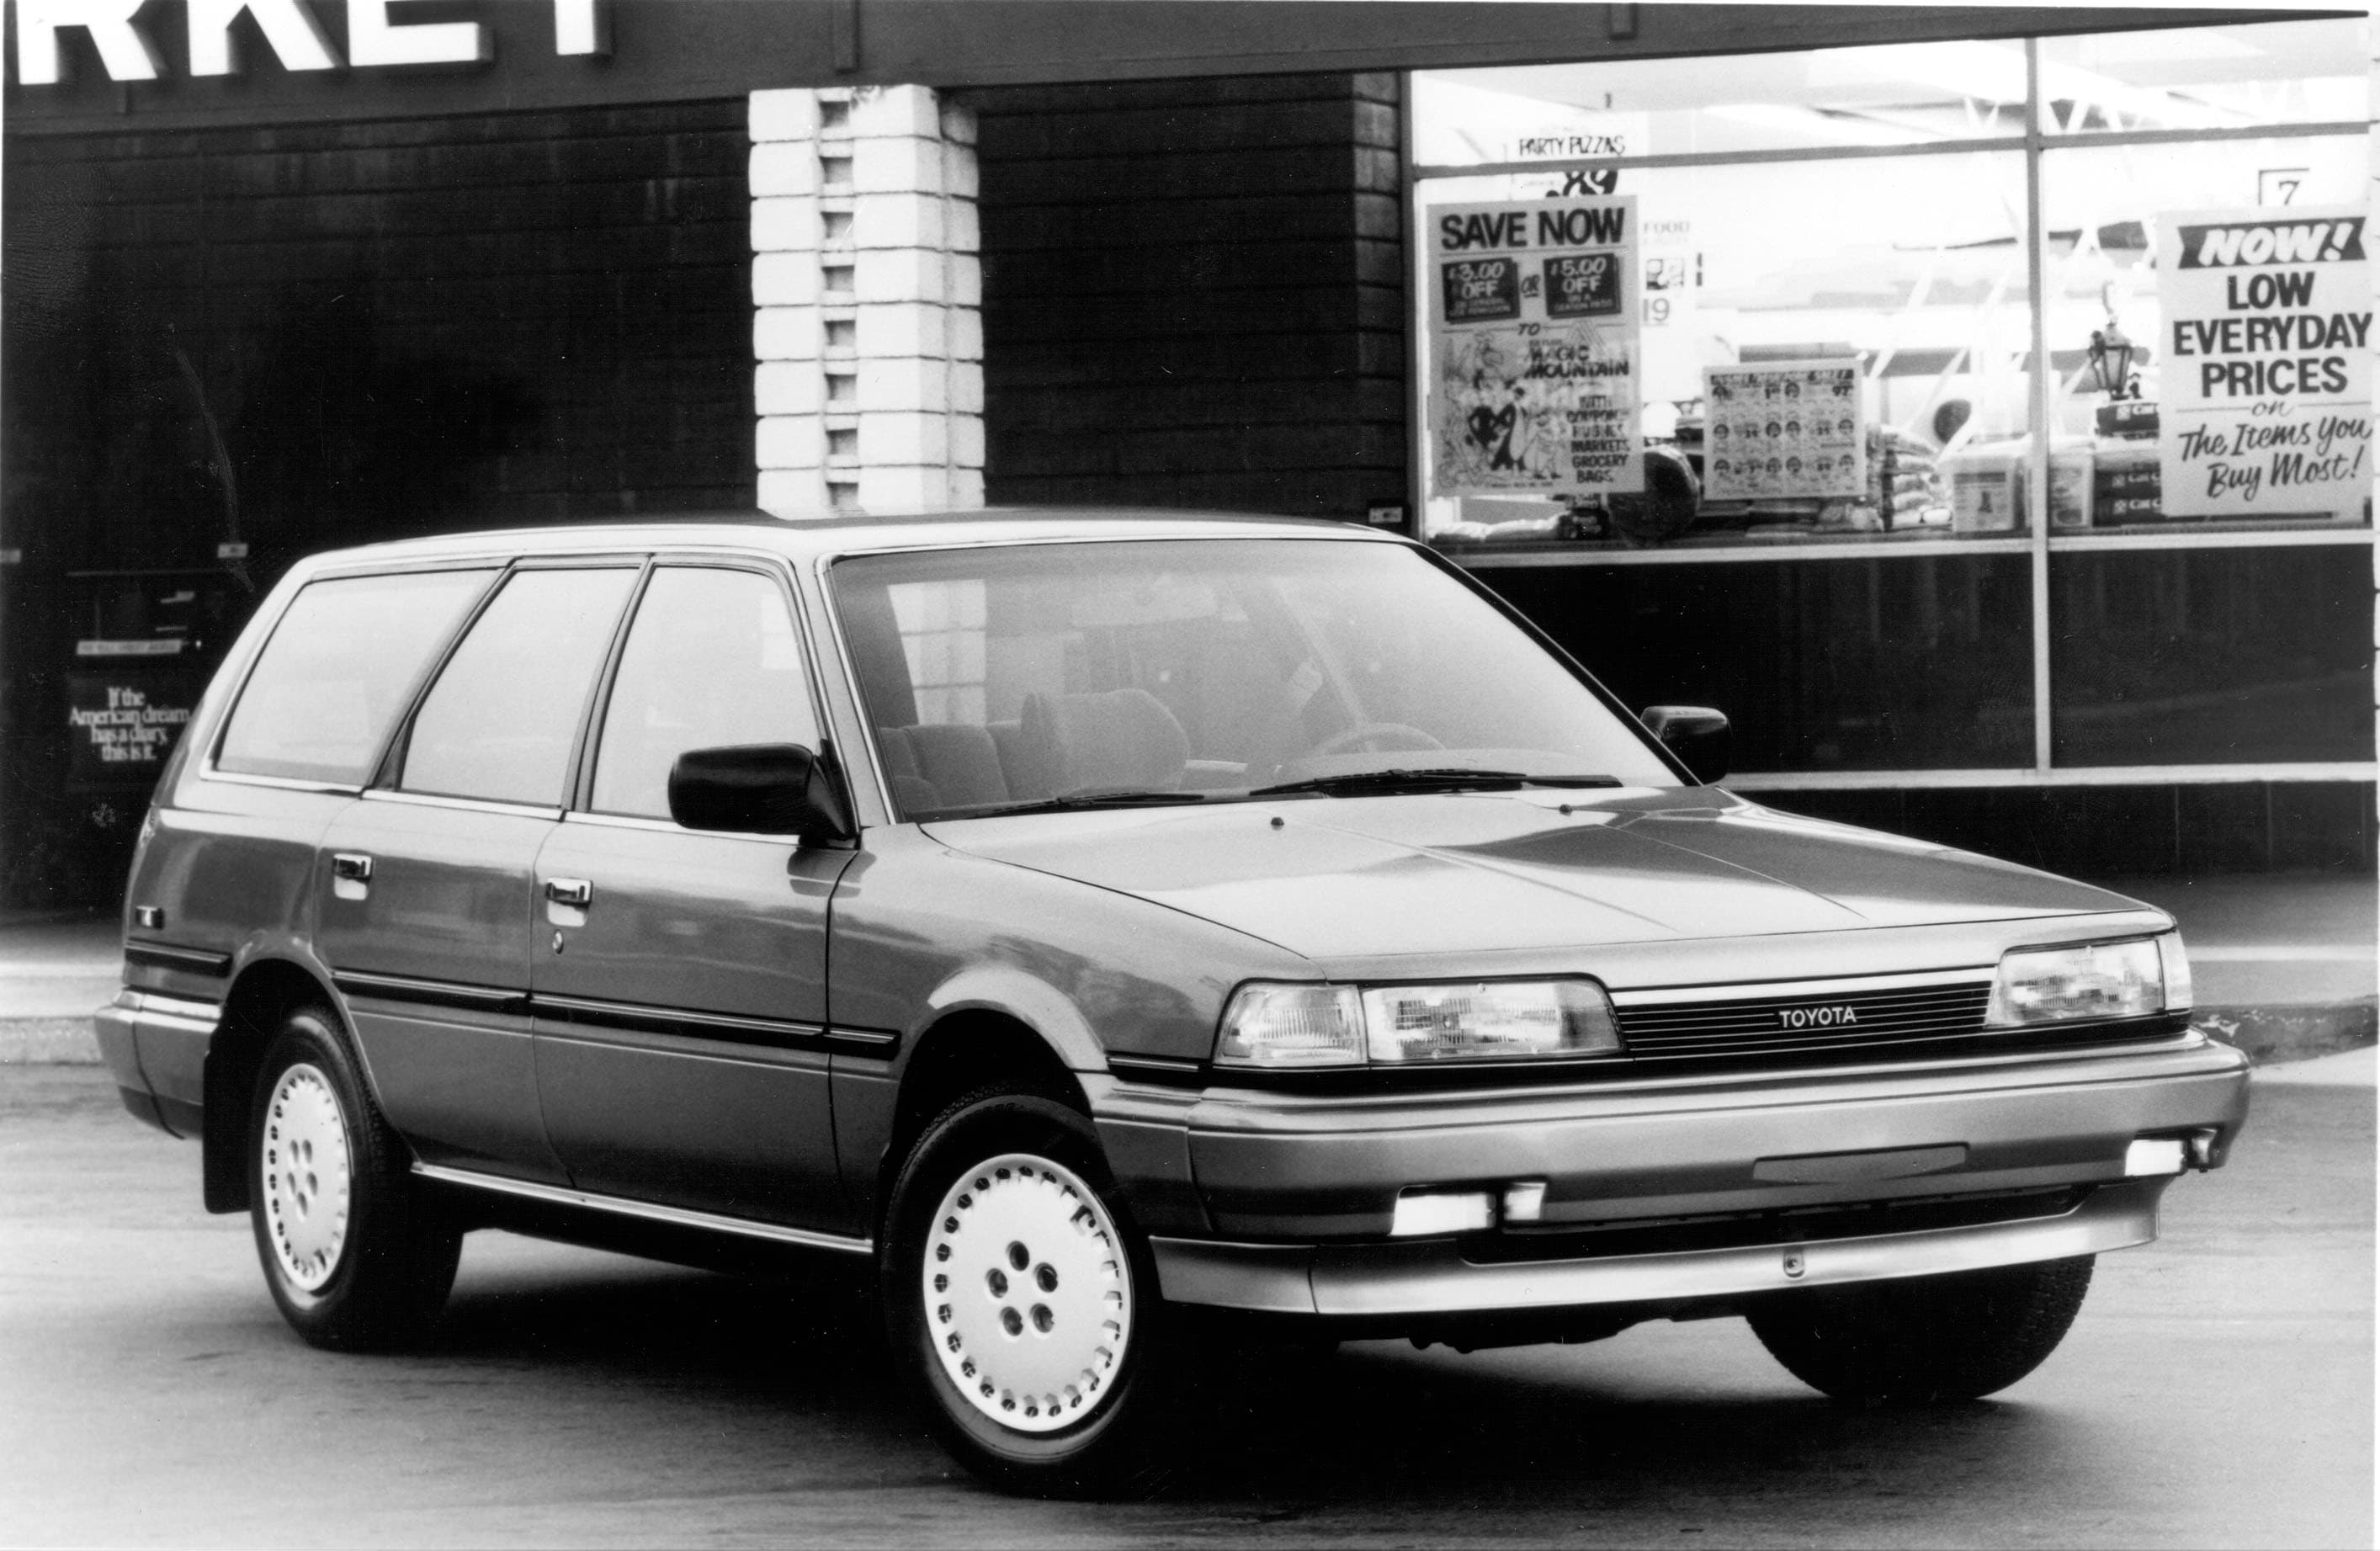 How The Toyota Camry Became Americas 1 Car Little Rockar Fuel Filter Change It Was Specifically Designed To Replace Corona As A Family Sedan For Us Market Had Three Different Engines Including 18 Liter Turbodiesel